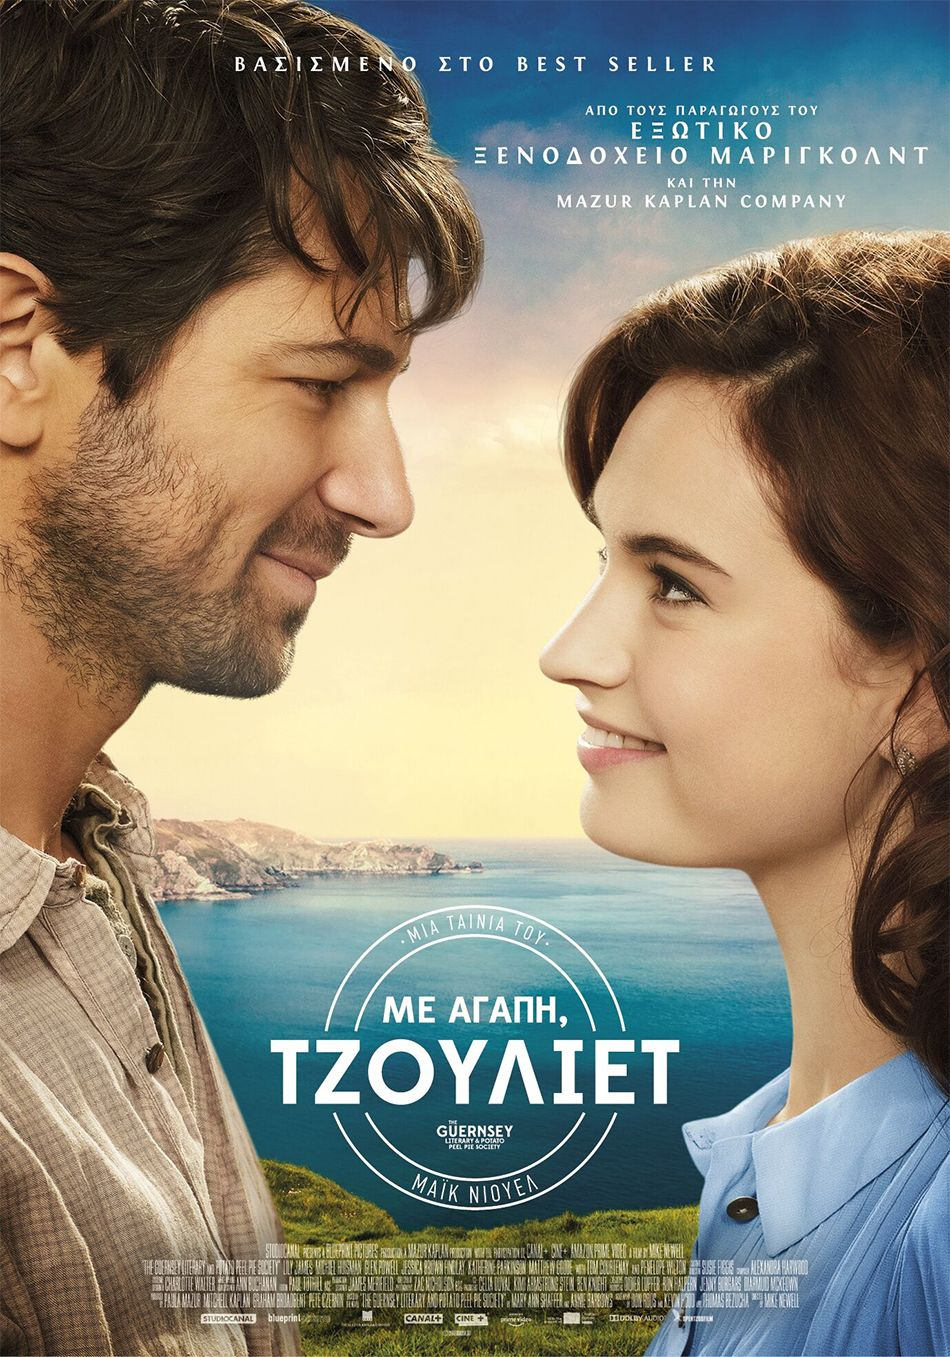 Με Αγάπη, Τζούλιετ (The Guernsey Literary and Potato Peel Pie Society) Poster